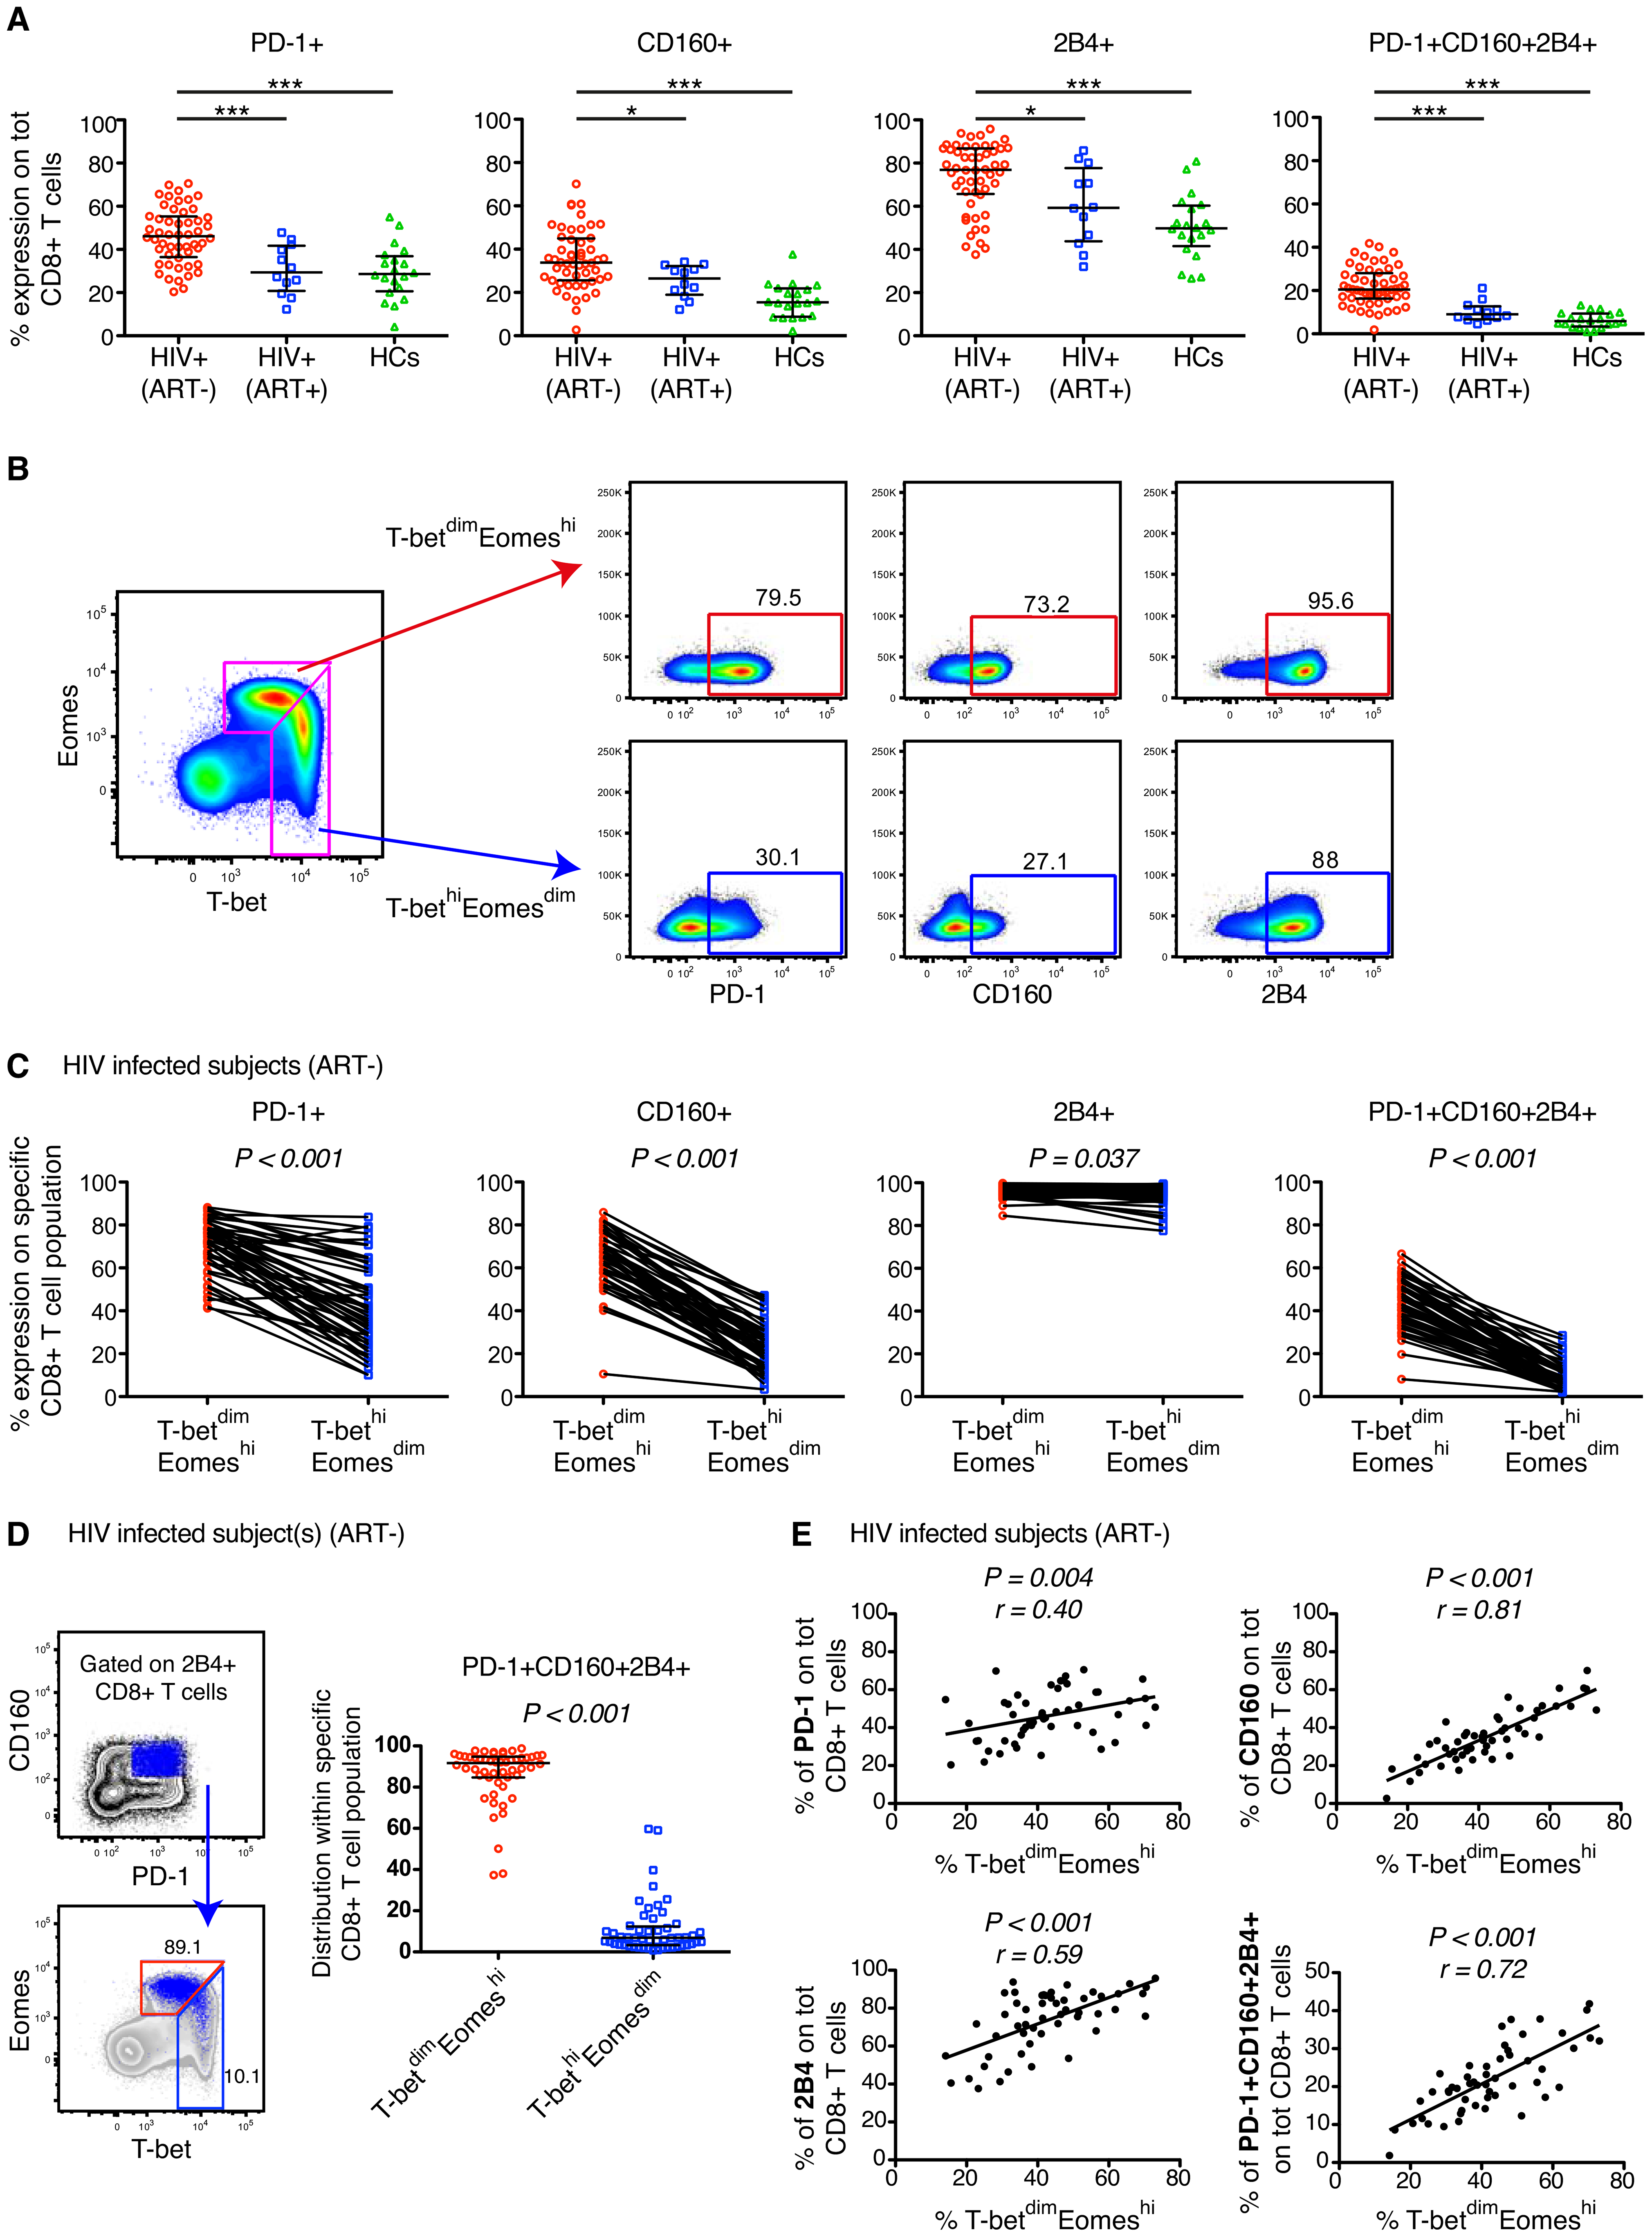 Expression patterns of inhibitory receptors and T-bet/Eomes on total CD8+ T cells.